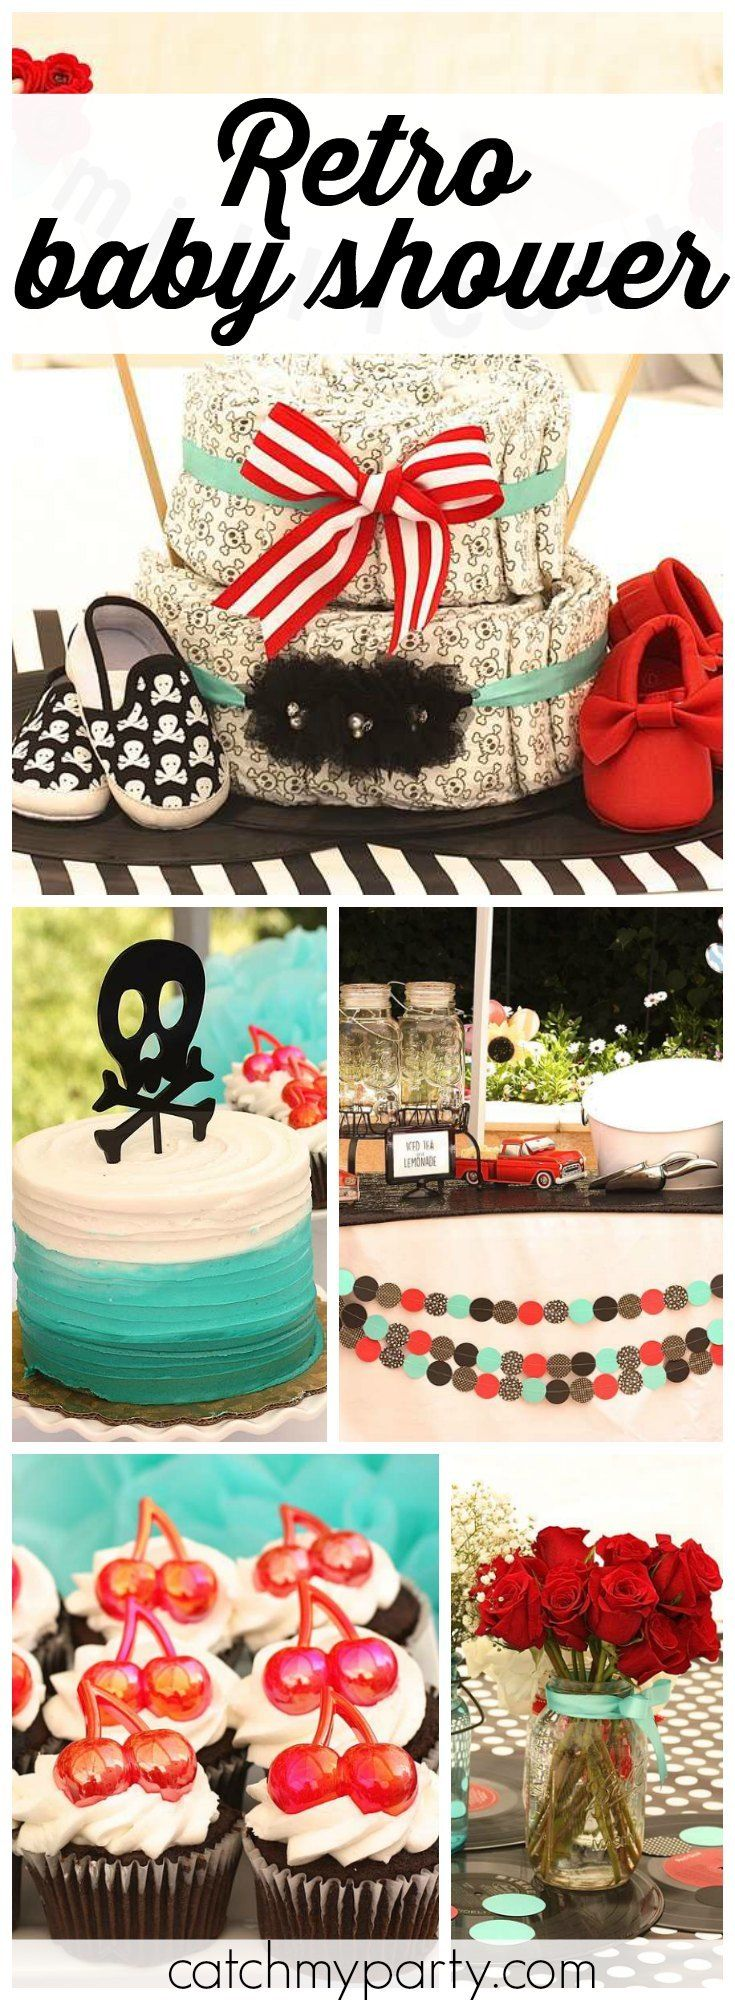 Retro Rockabilly Is The Theme Of This Unique Baby Shower! See More Party  Ideas At